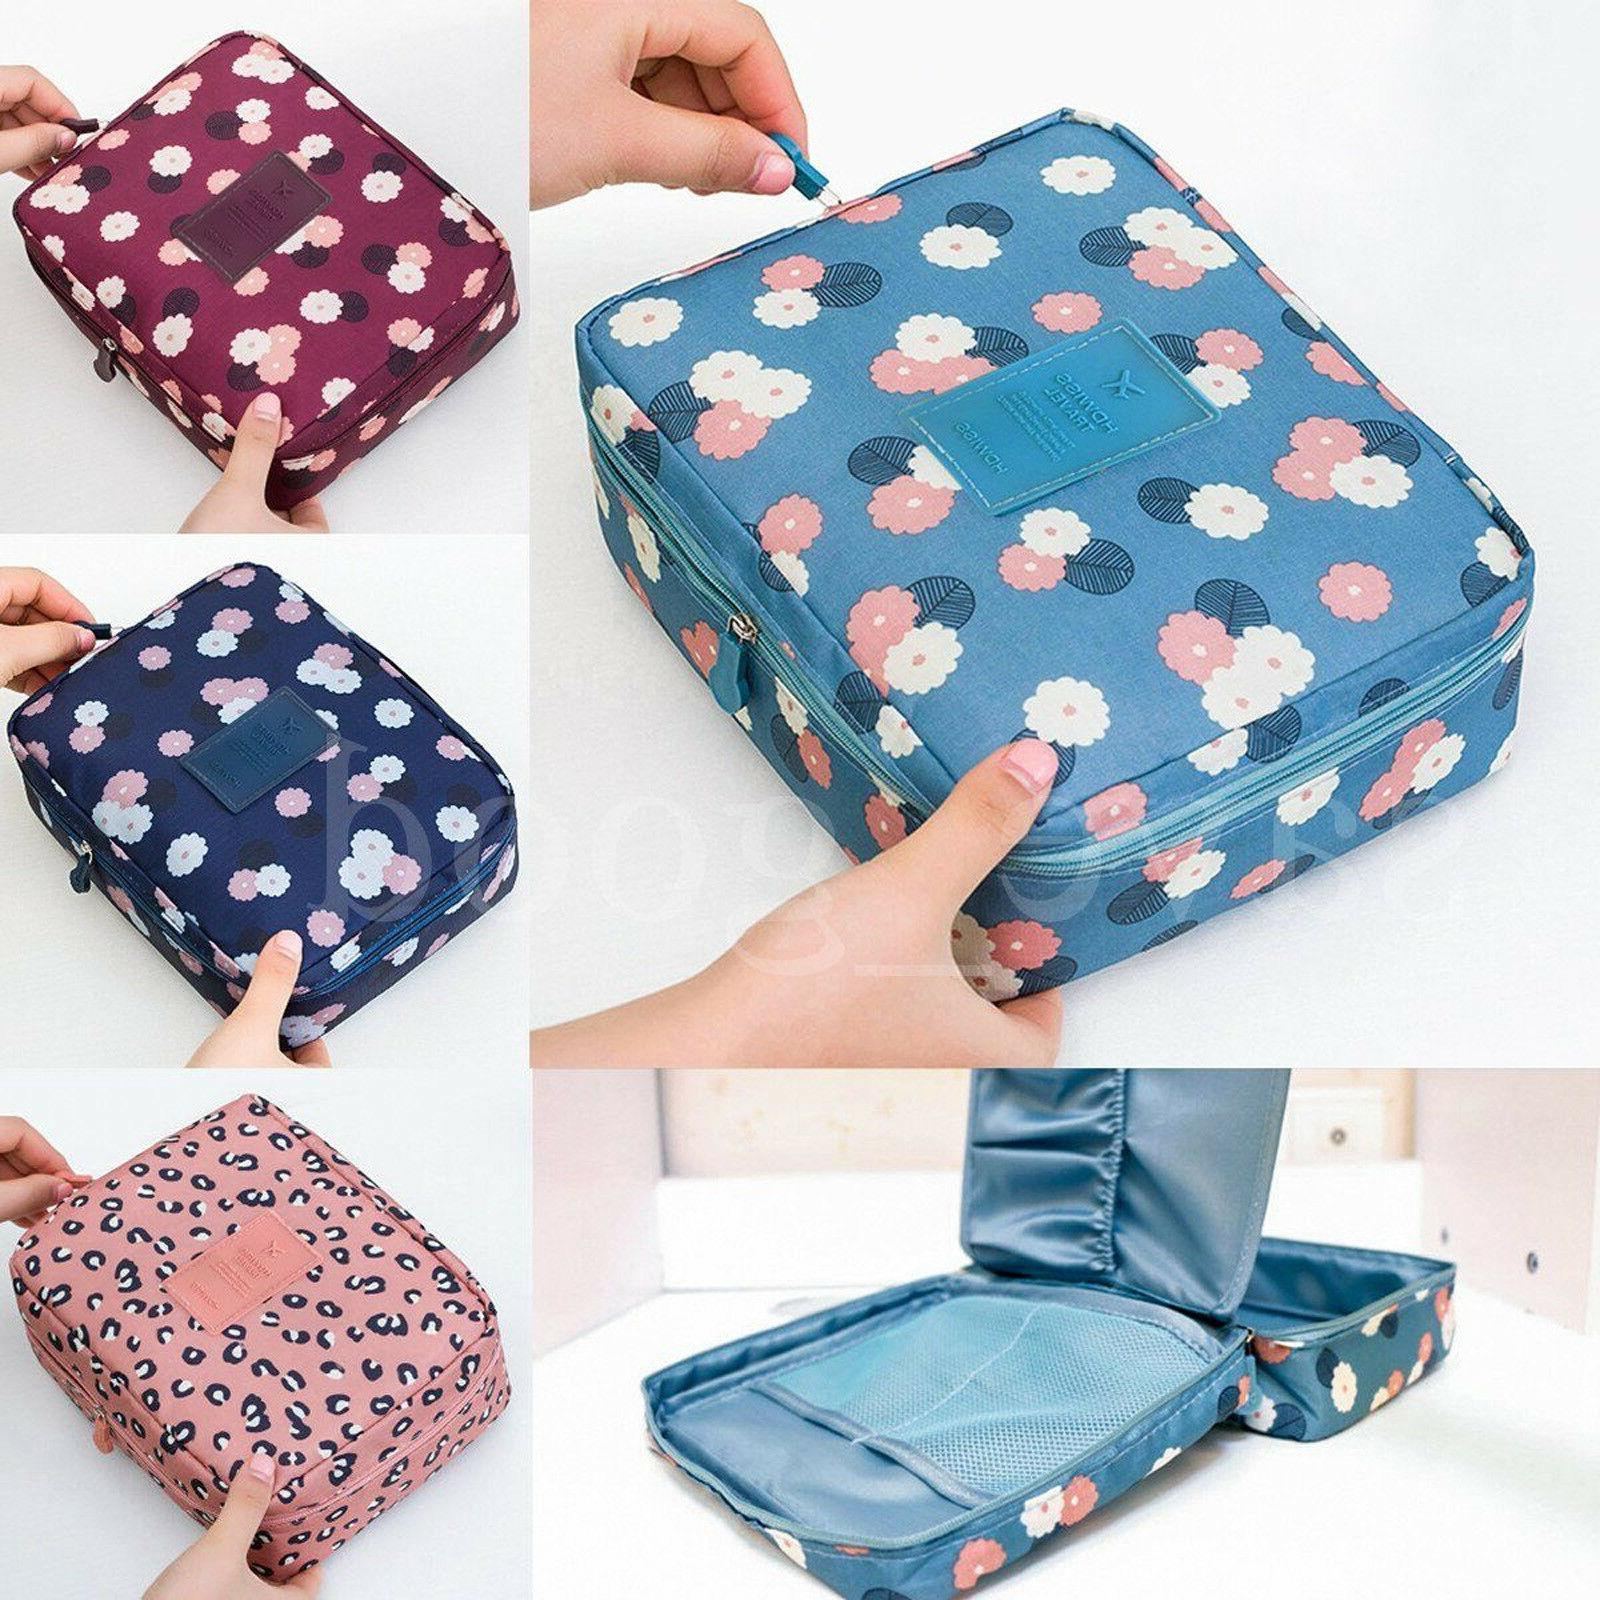 travel cosmetic makeup bag toiletry case storage